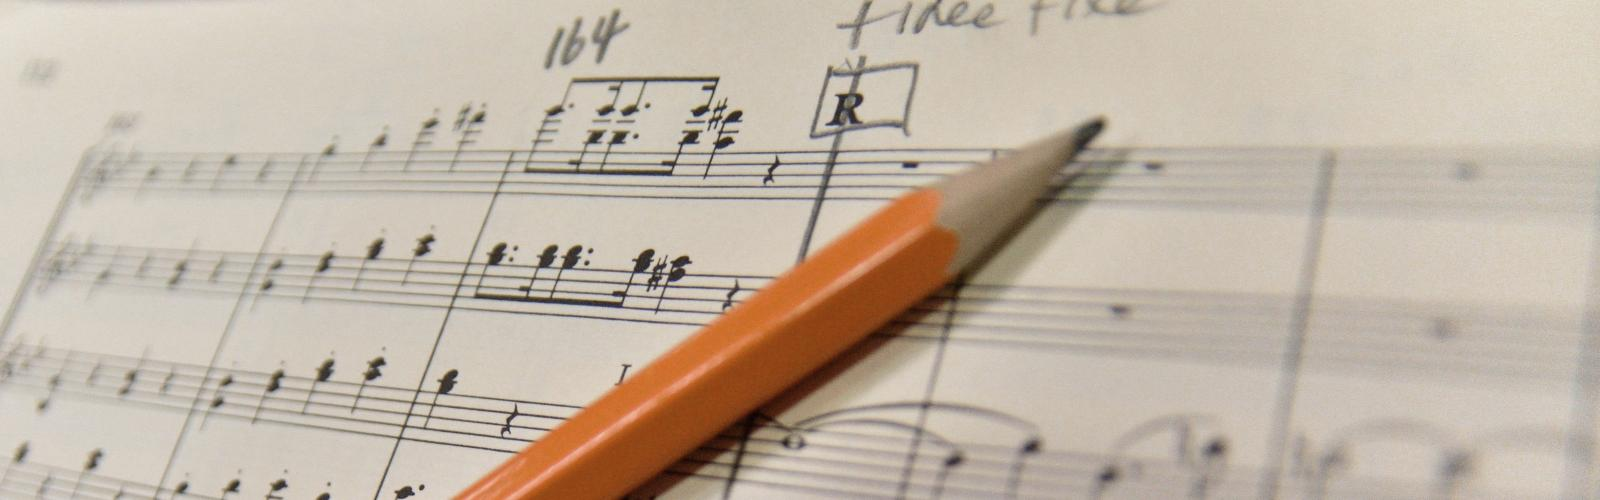 Music score with pencil